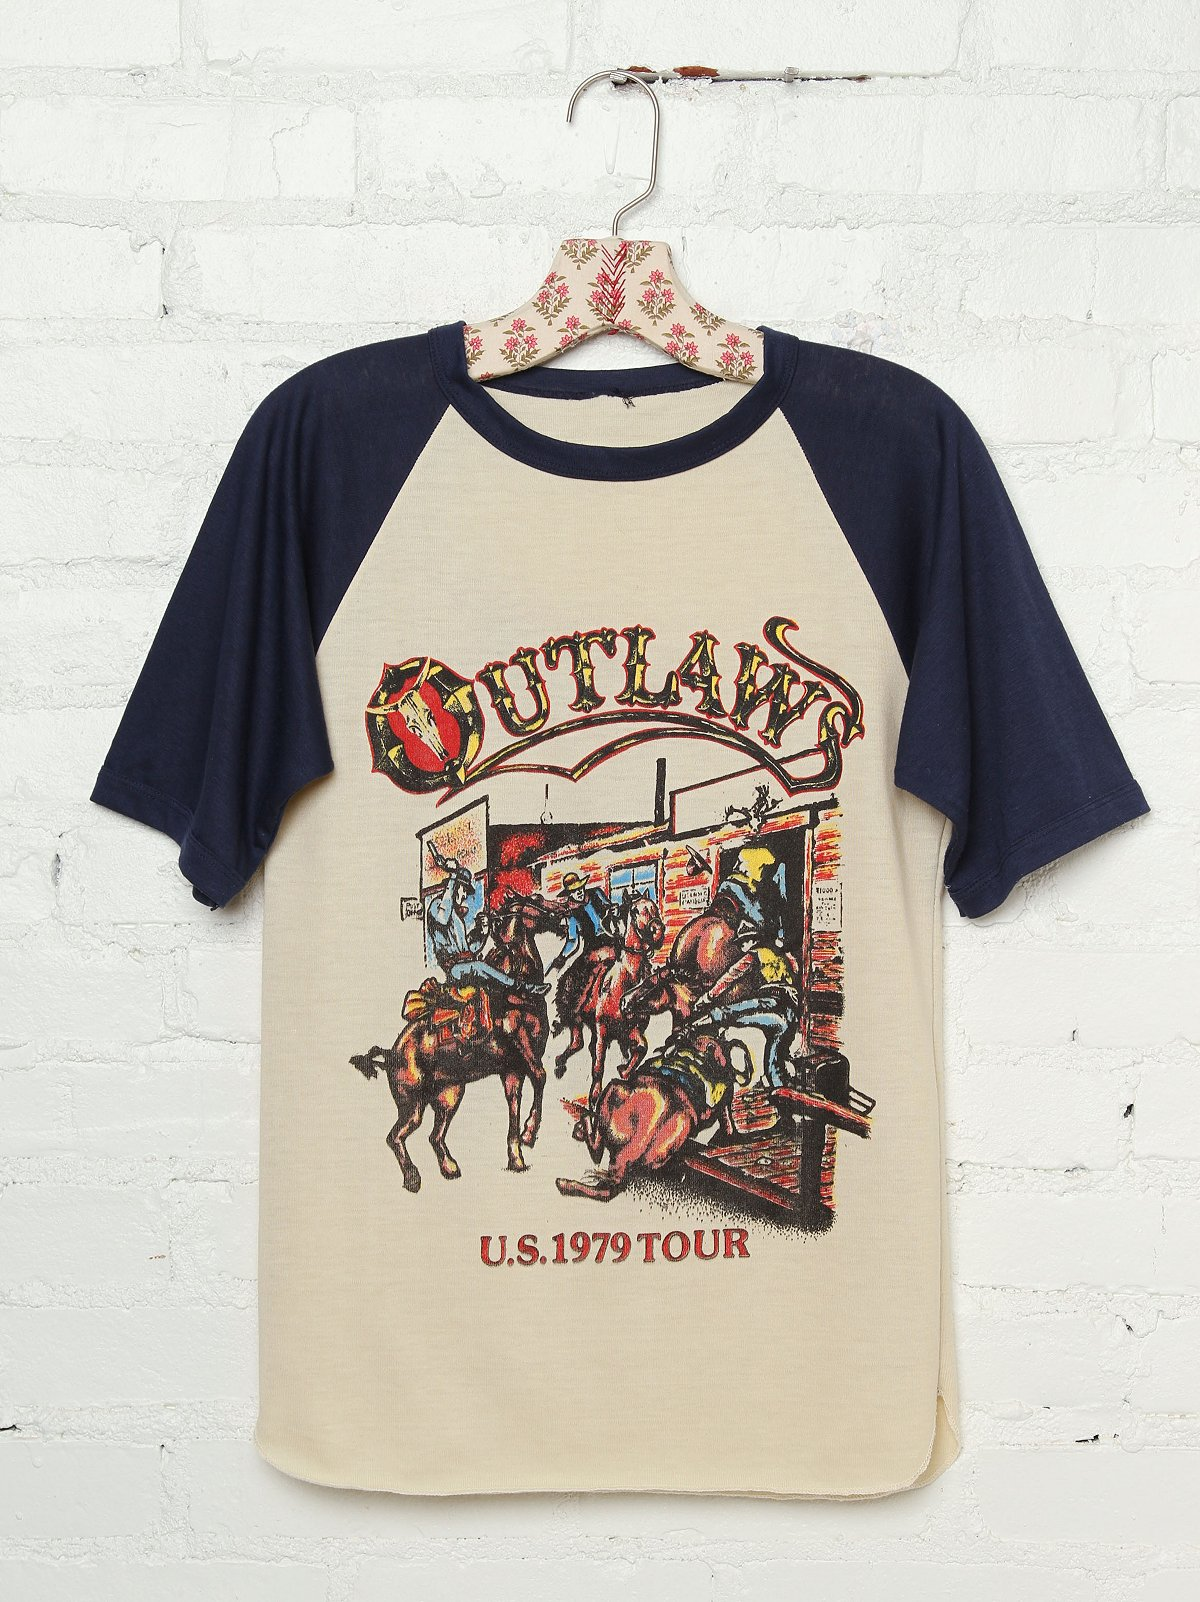 Vintage Outlaws 1979 U.S. Tour Tee